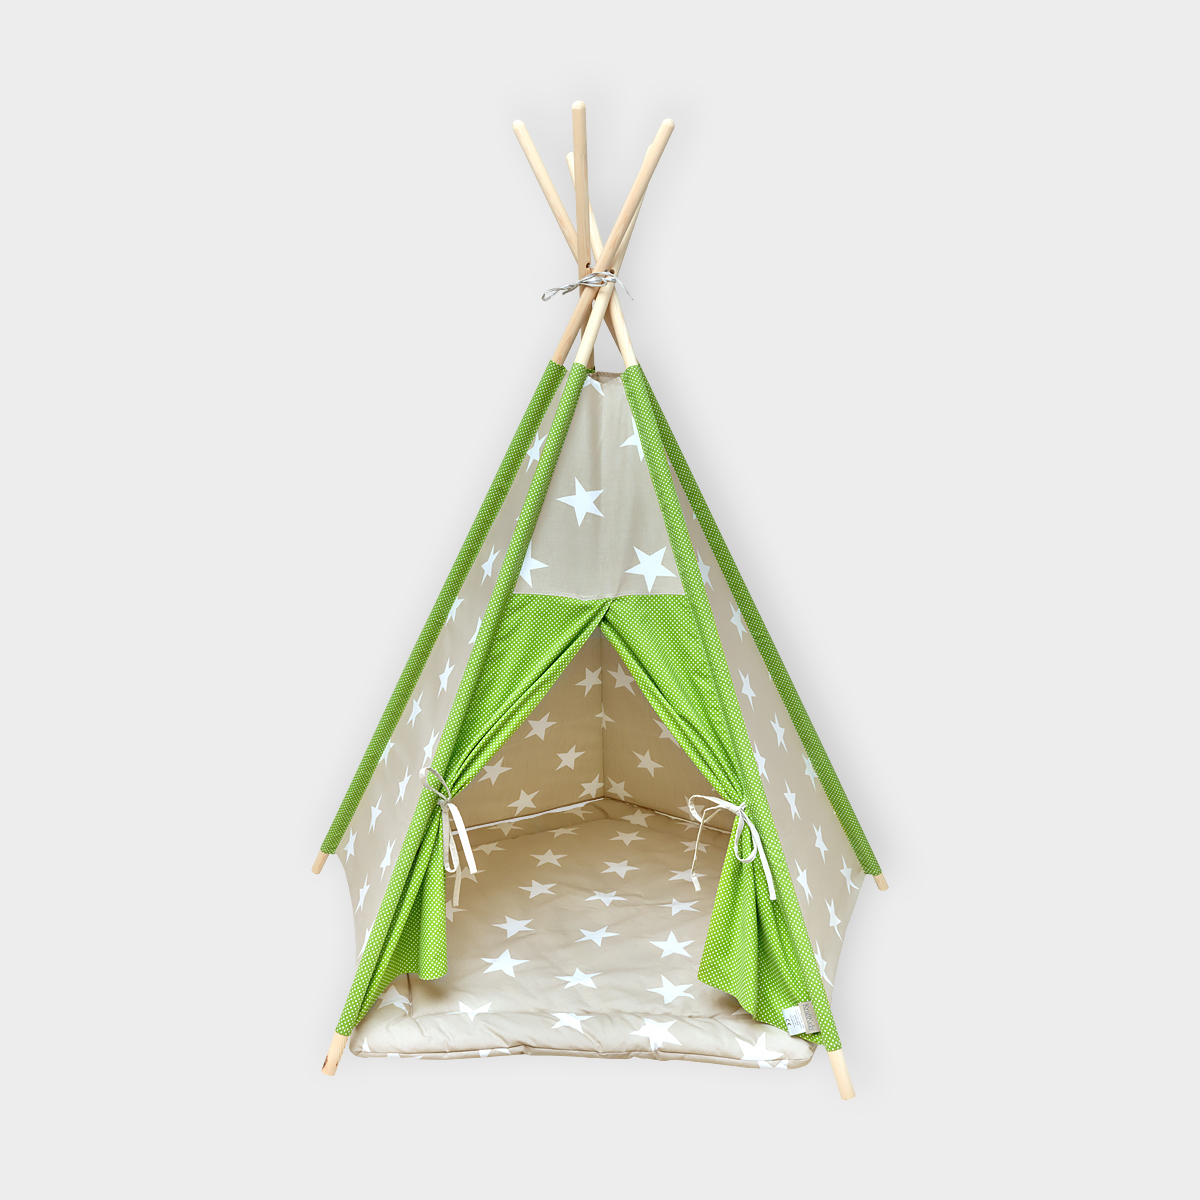 kraftkids spielzelt tipi gro e wei e sterne auf beige und. Black Bedroom Furniture Sets. Home Design Ideas